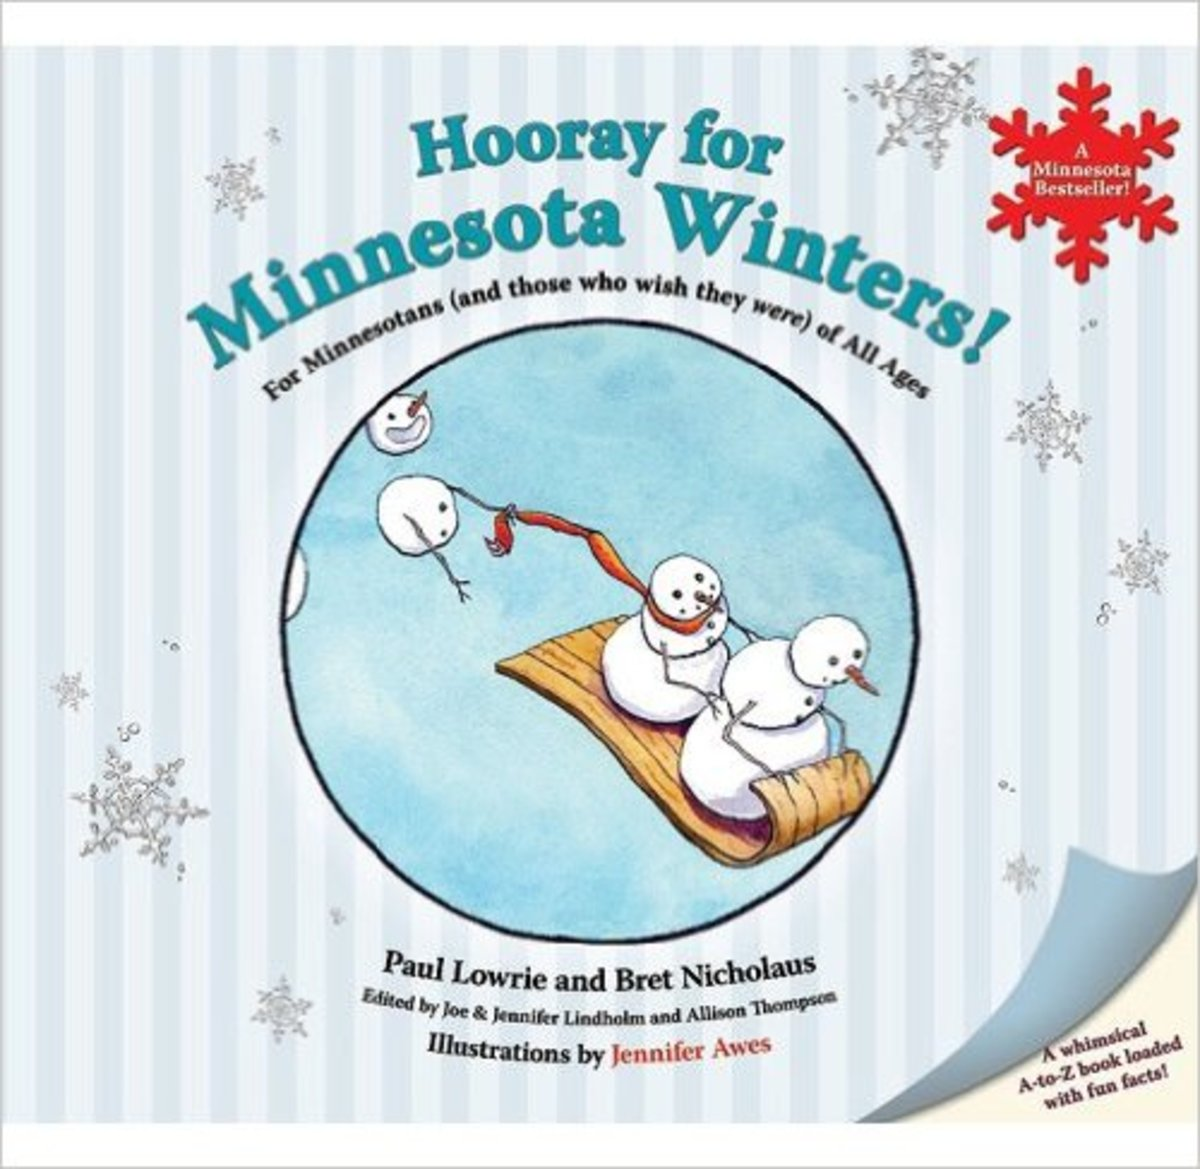 Hooray for Minnesota Winters!: For Minnesotans (and Those Who Wish They Were) of All Ages by Paul Lowrie